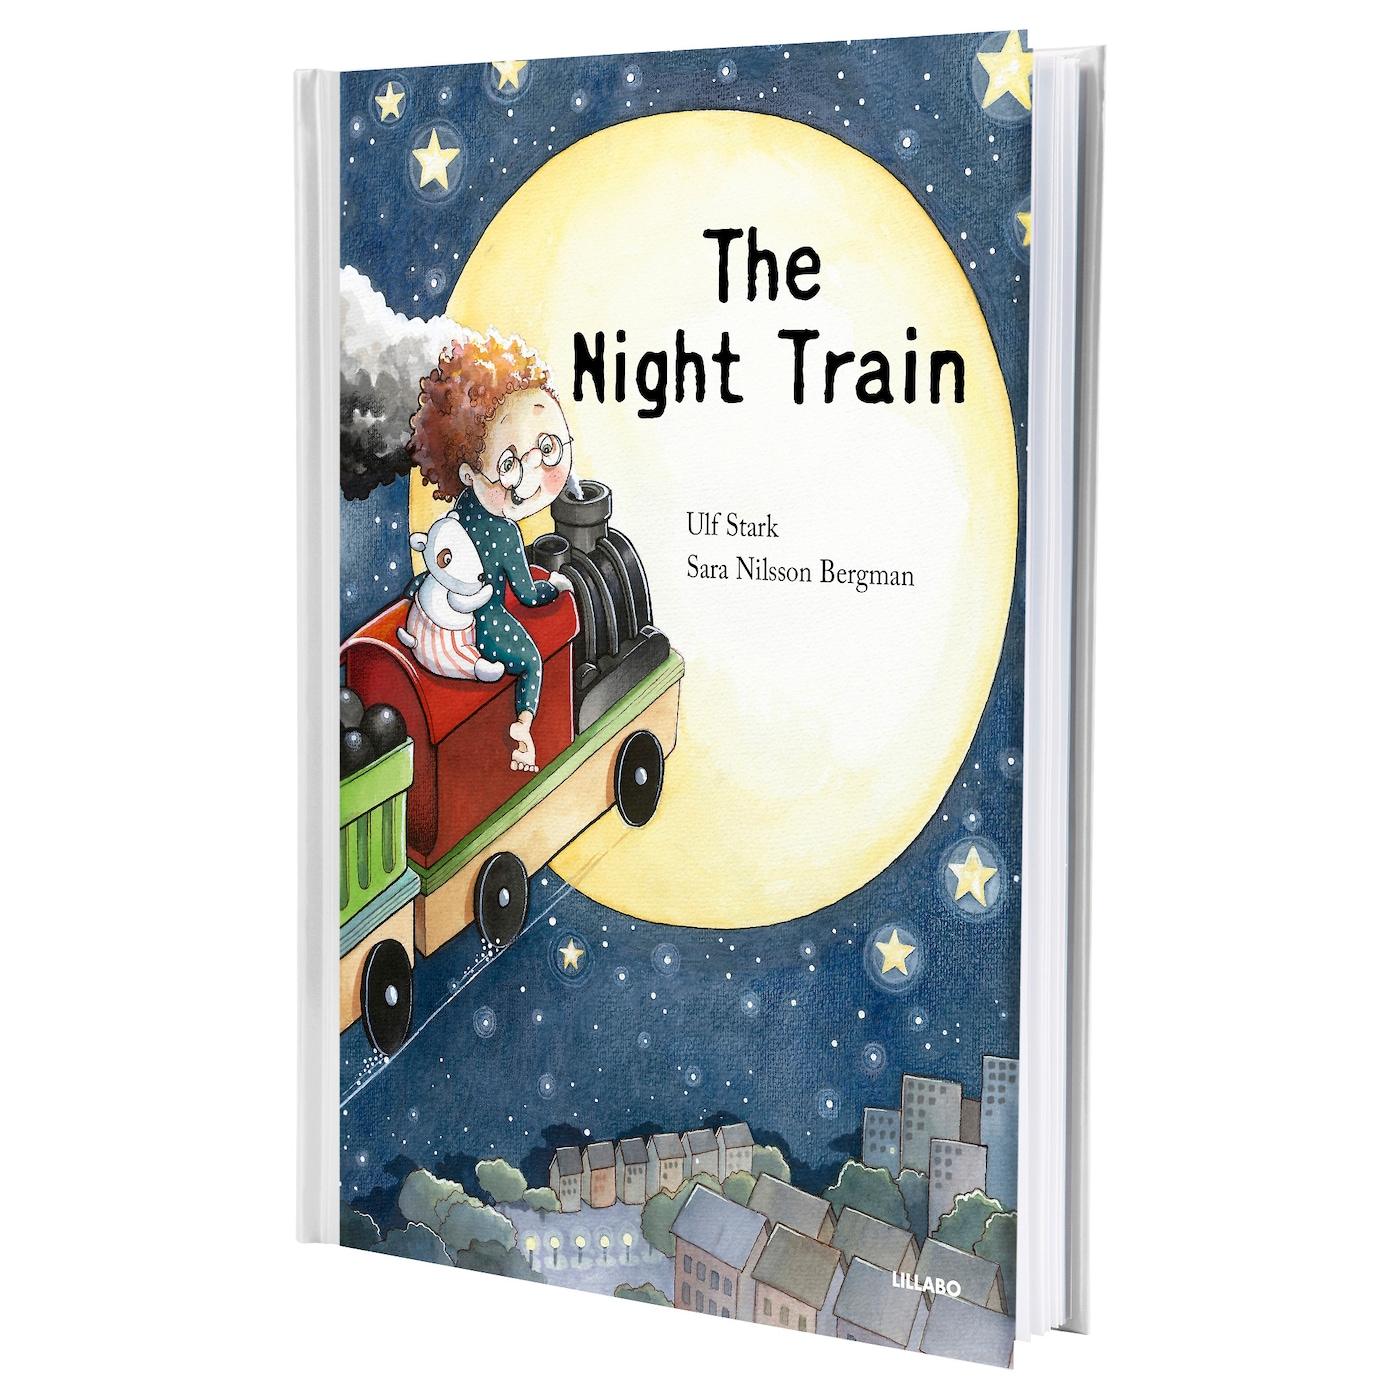 The Adhnighttrain: Children And Adult Books